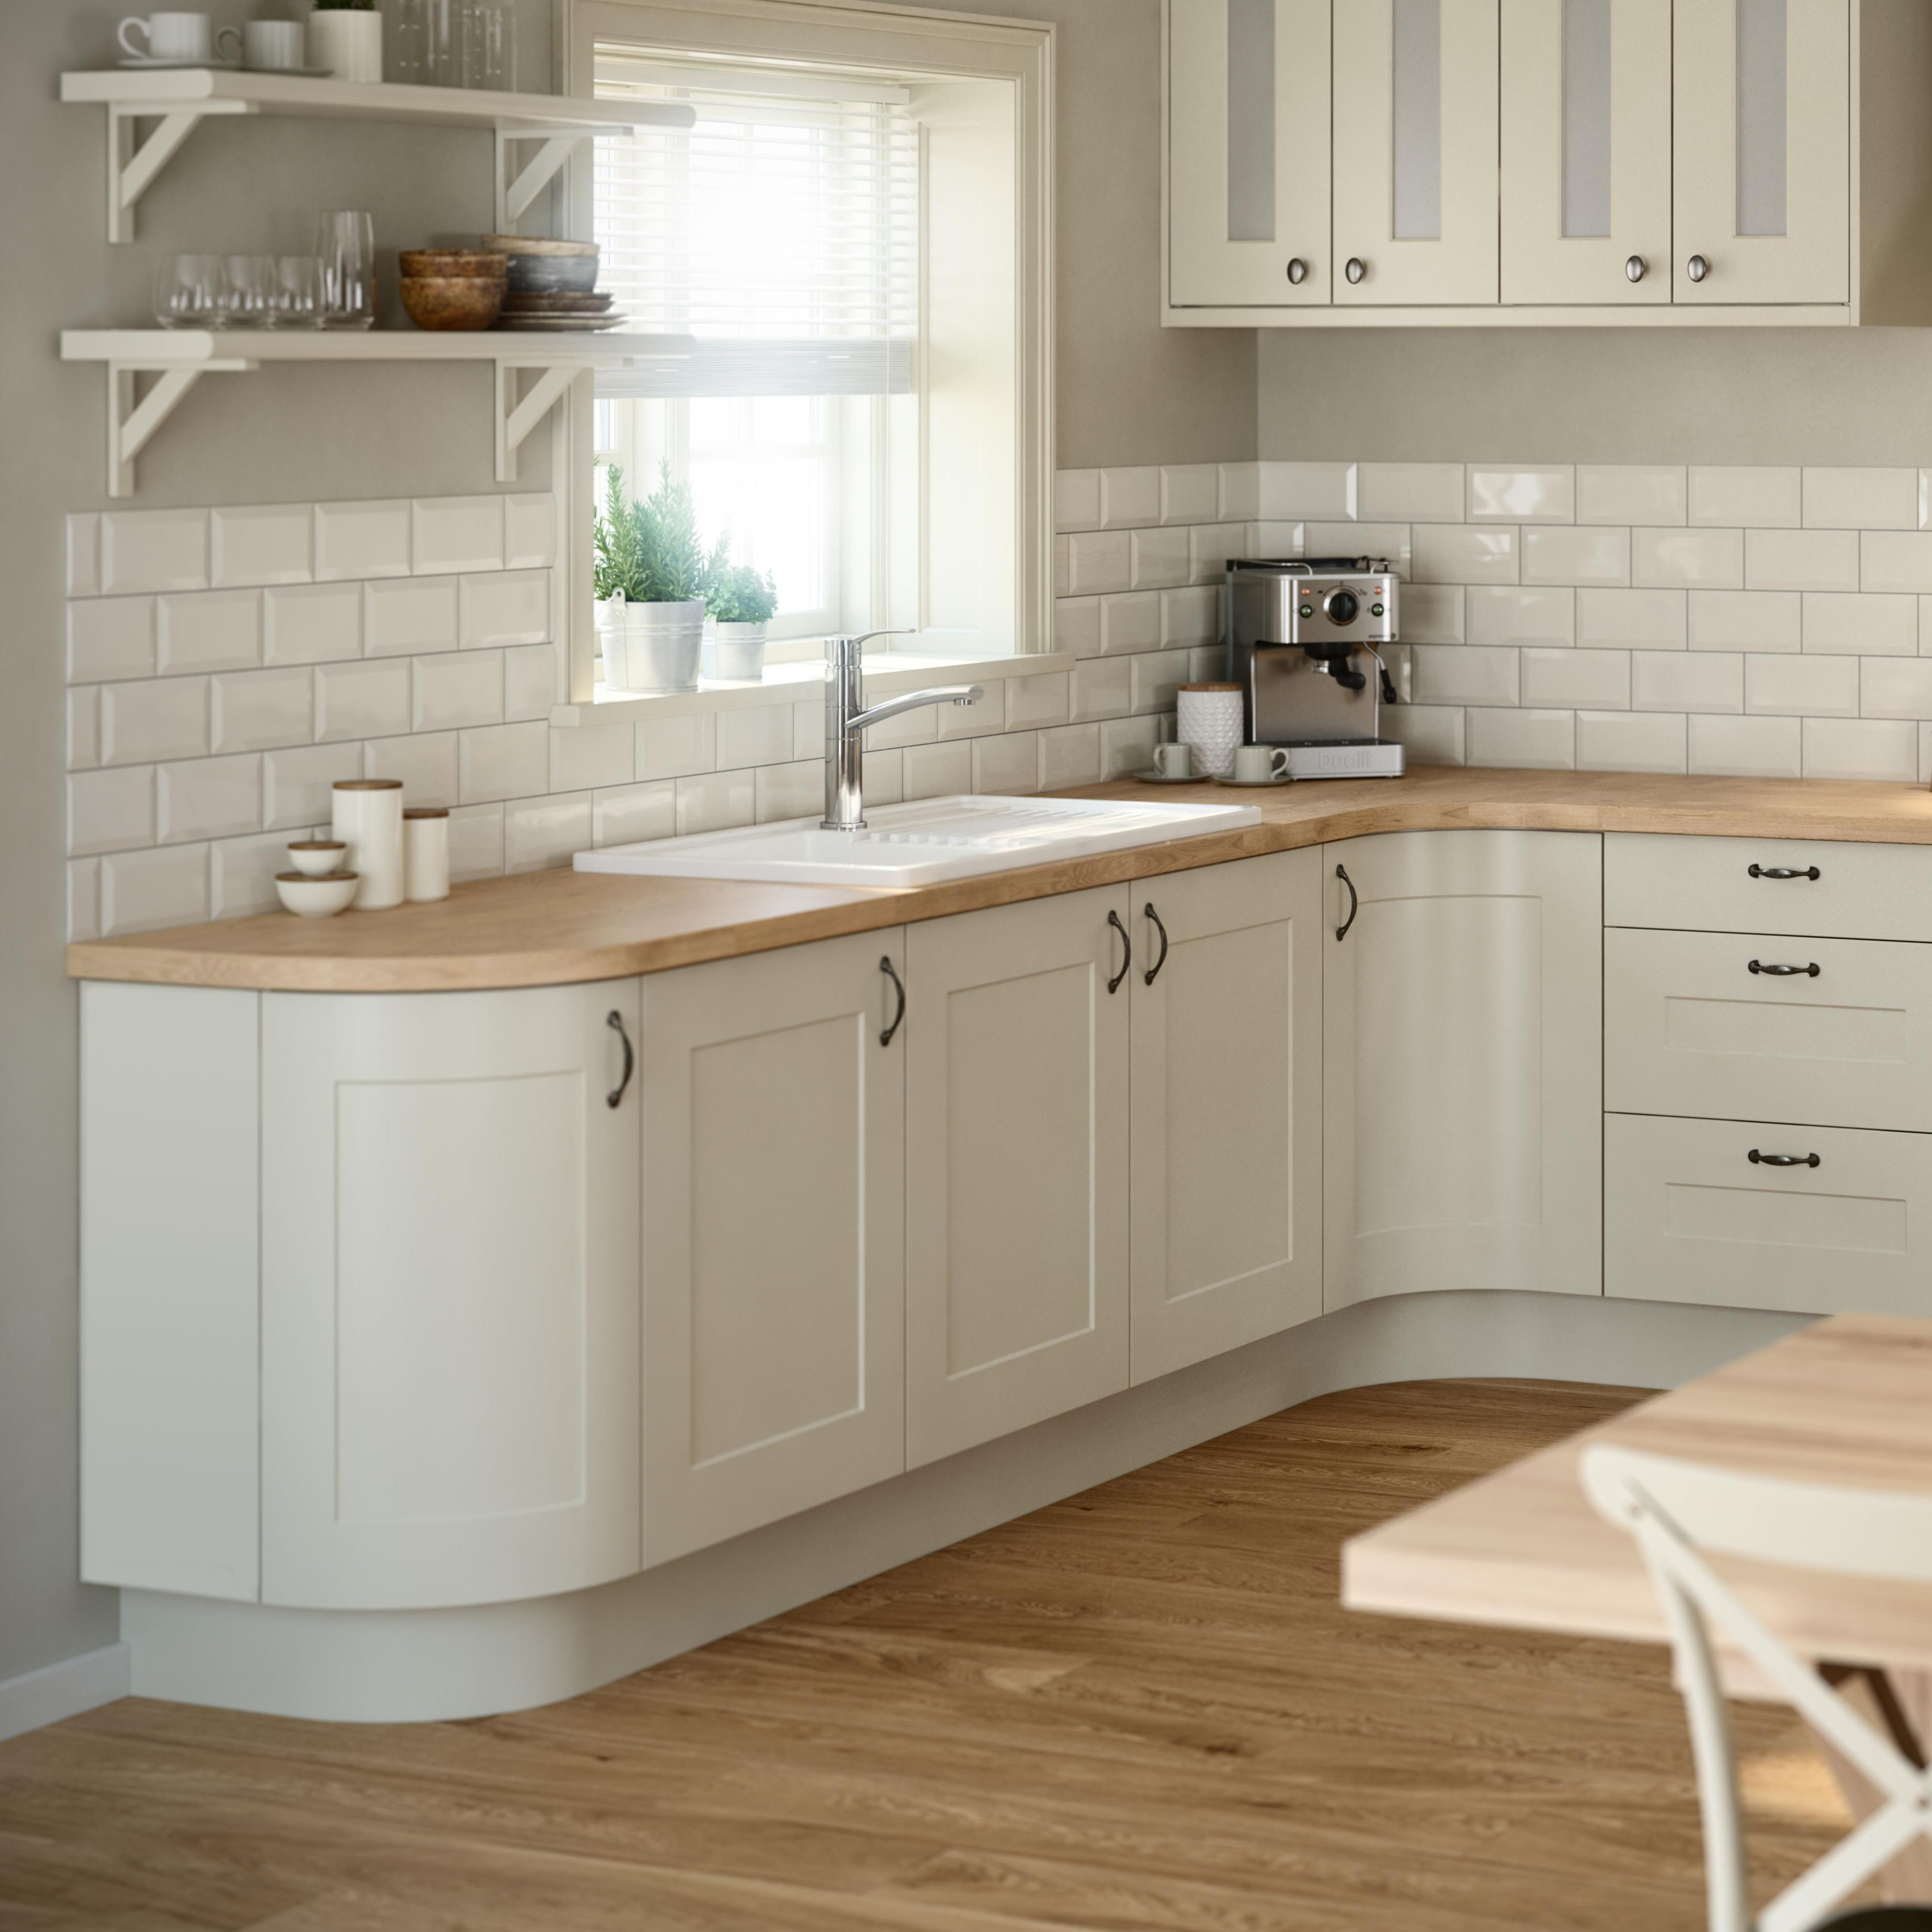 cream kitchen what colour tiles country kitchen design ideas ideas amp advice diy at b amp q 8500